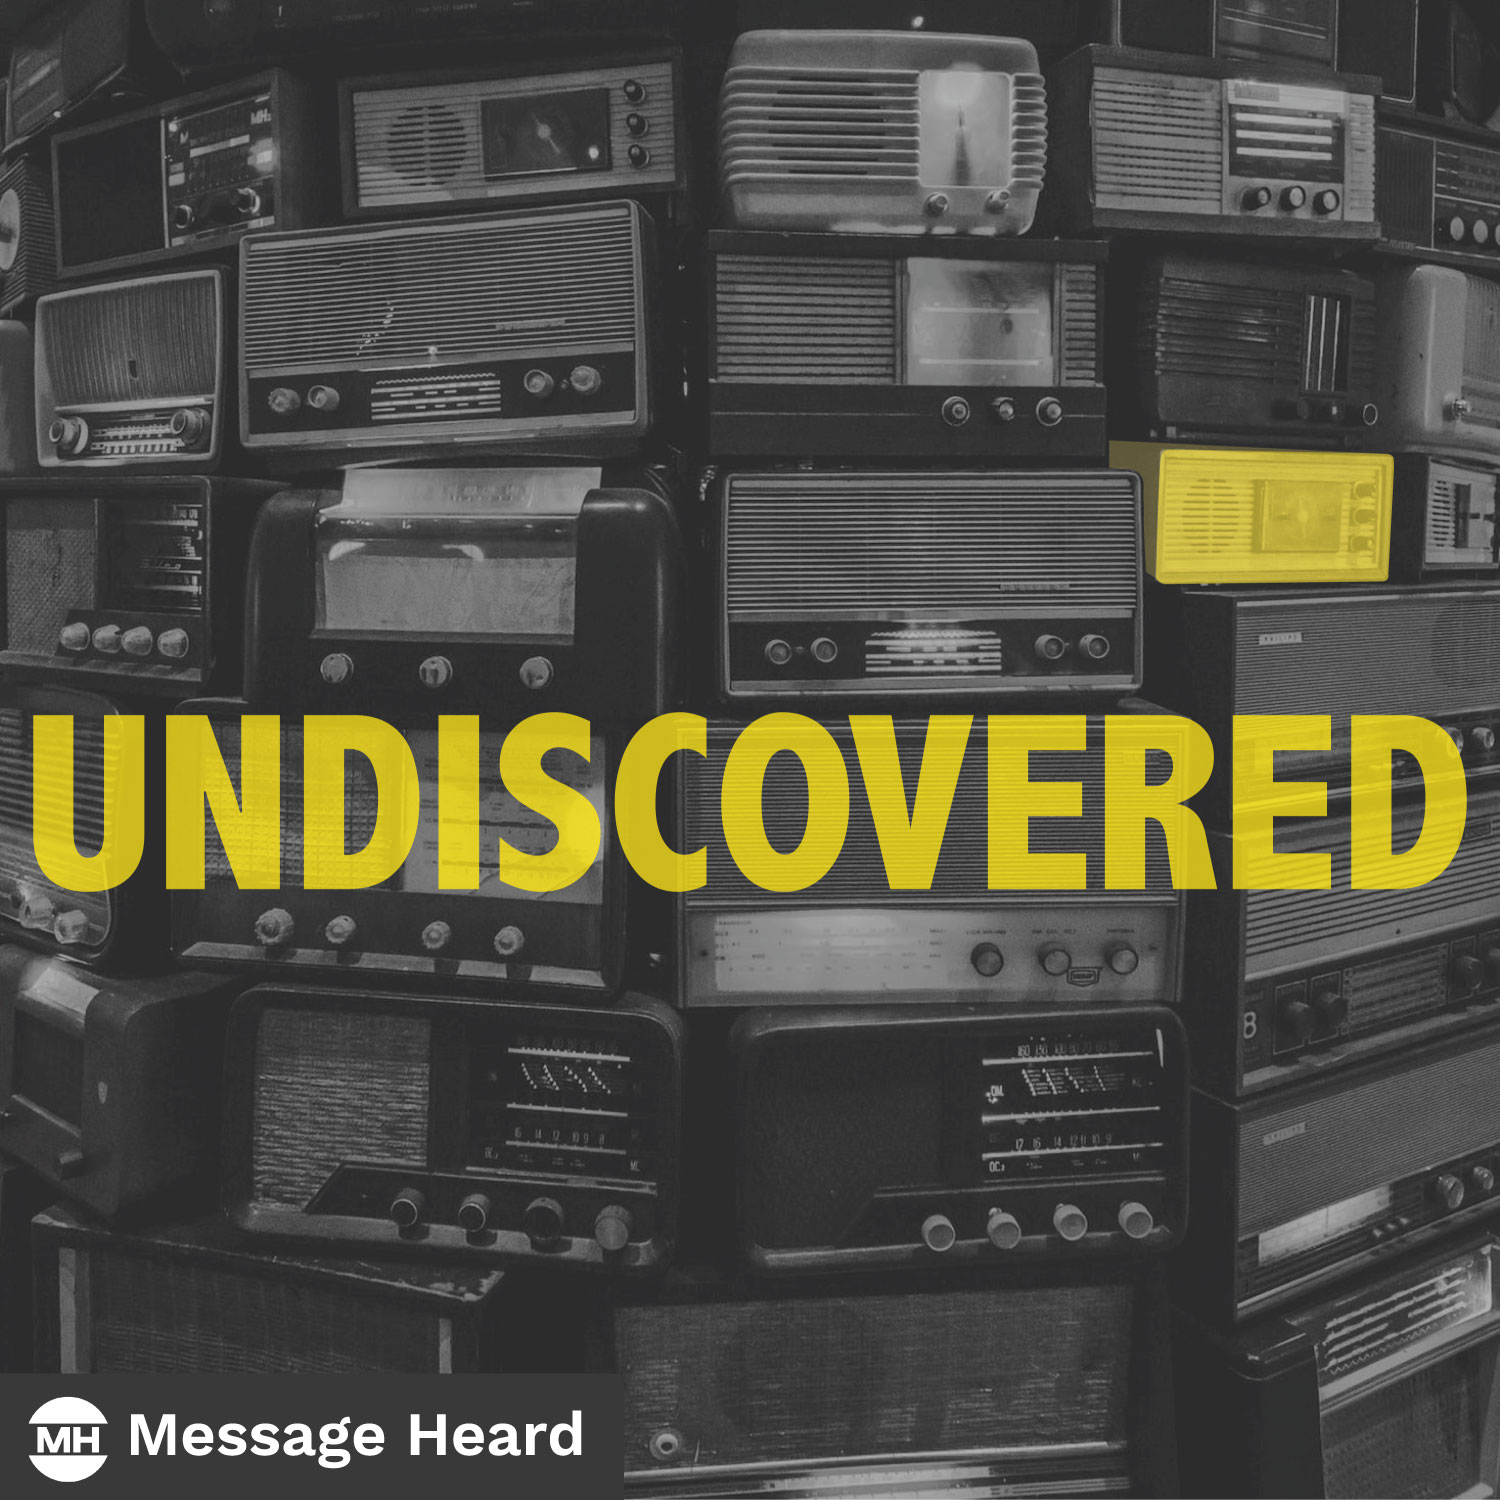 undiscovered-badge-medium (1).jpg